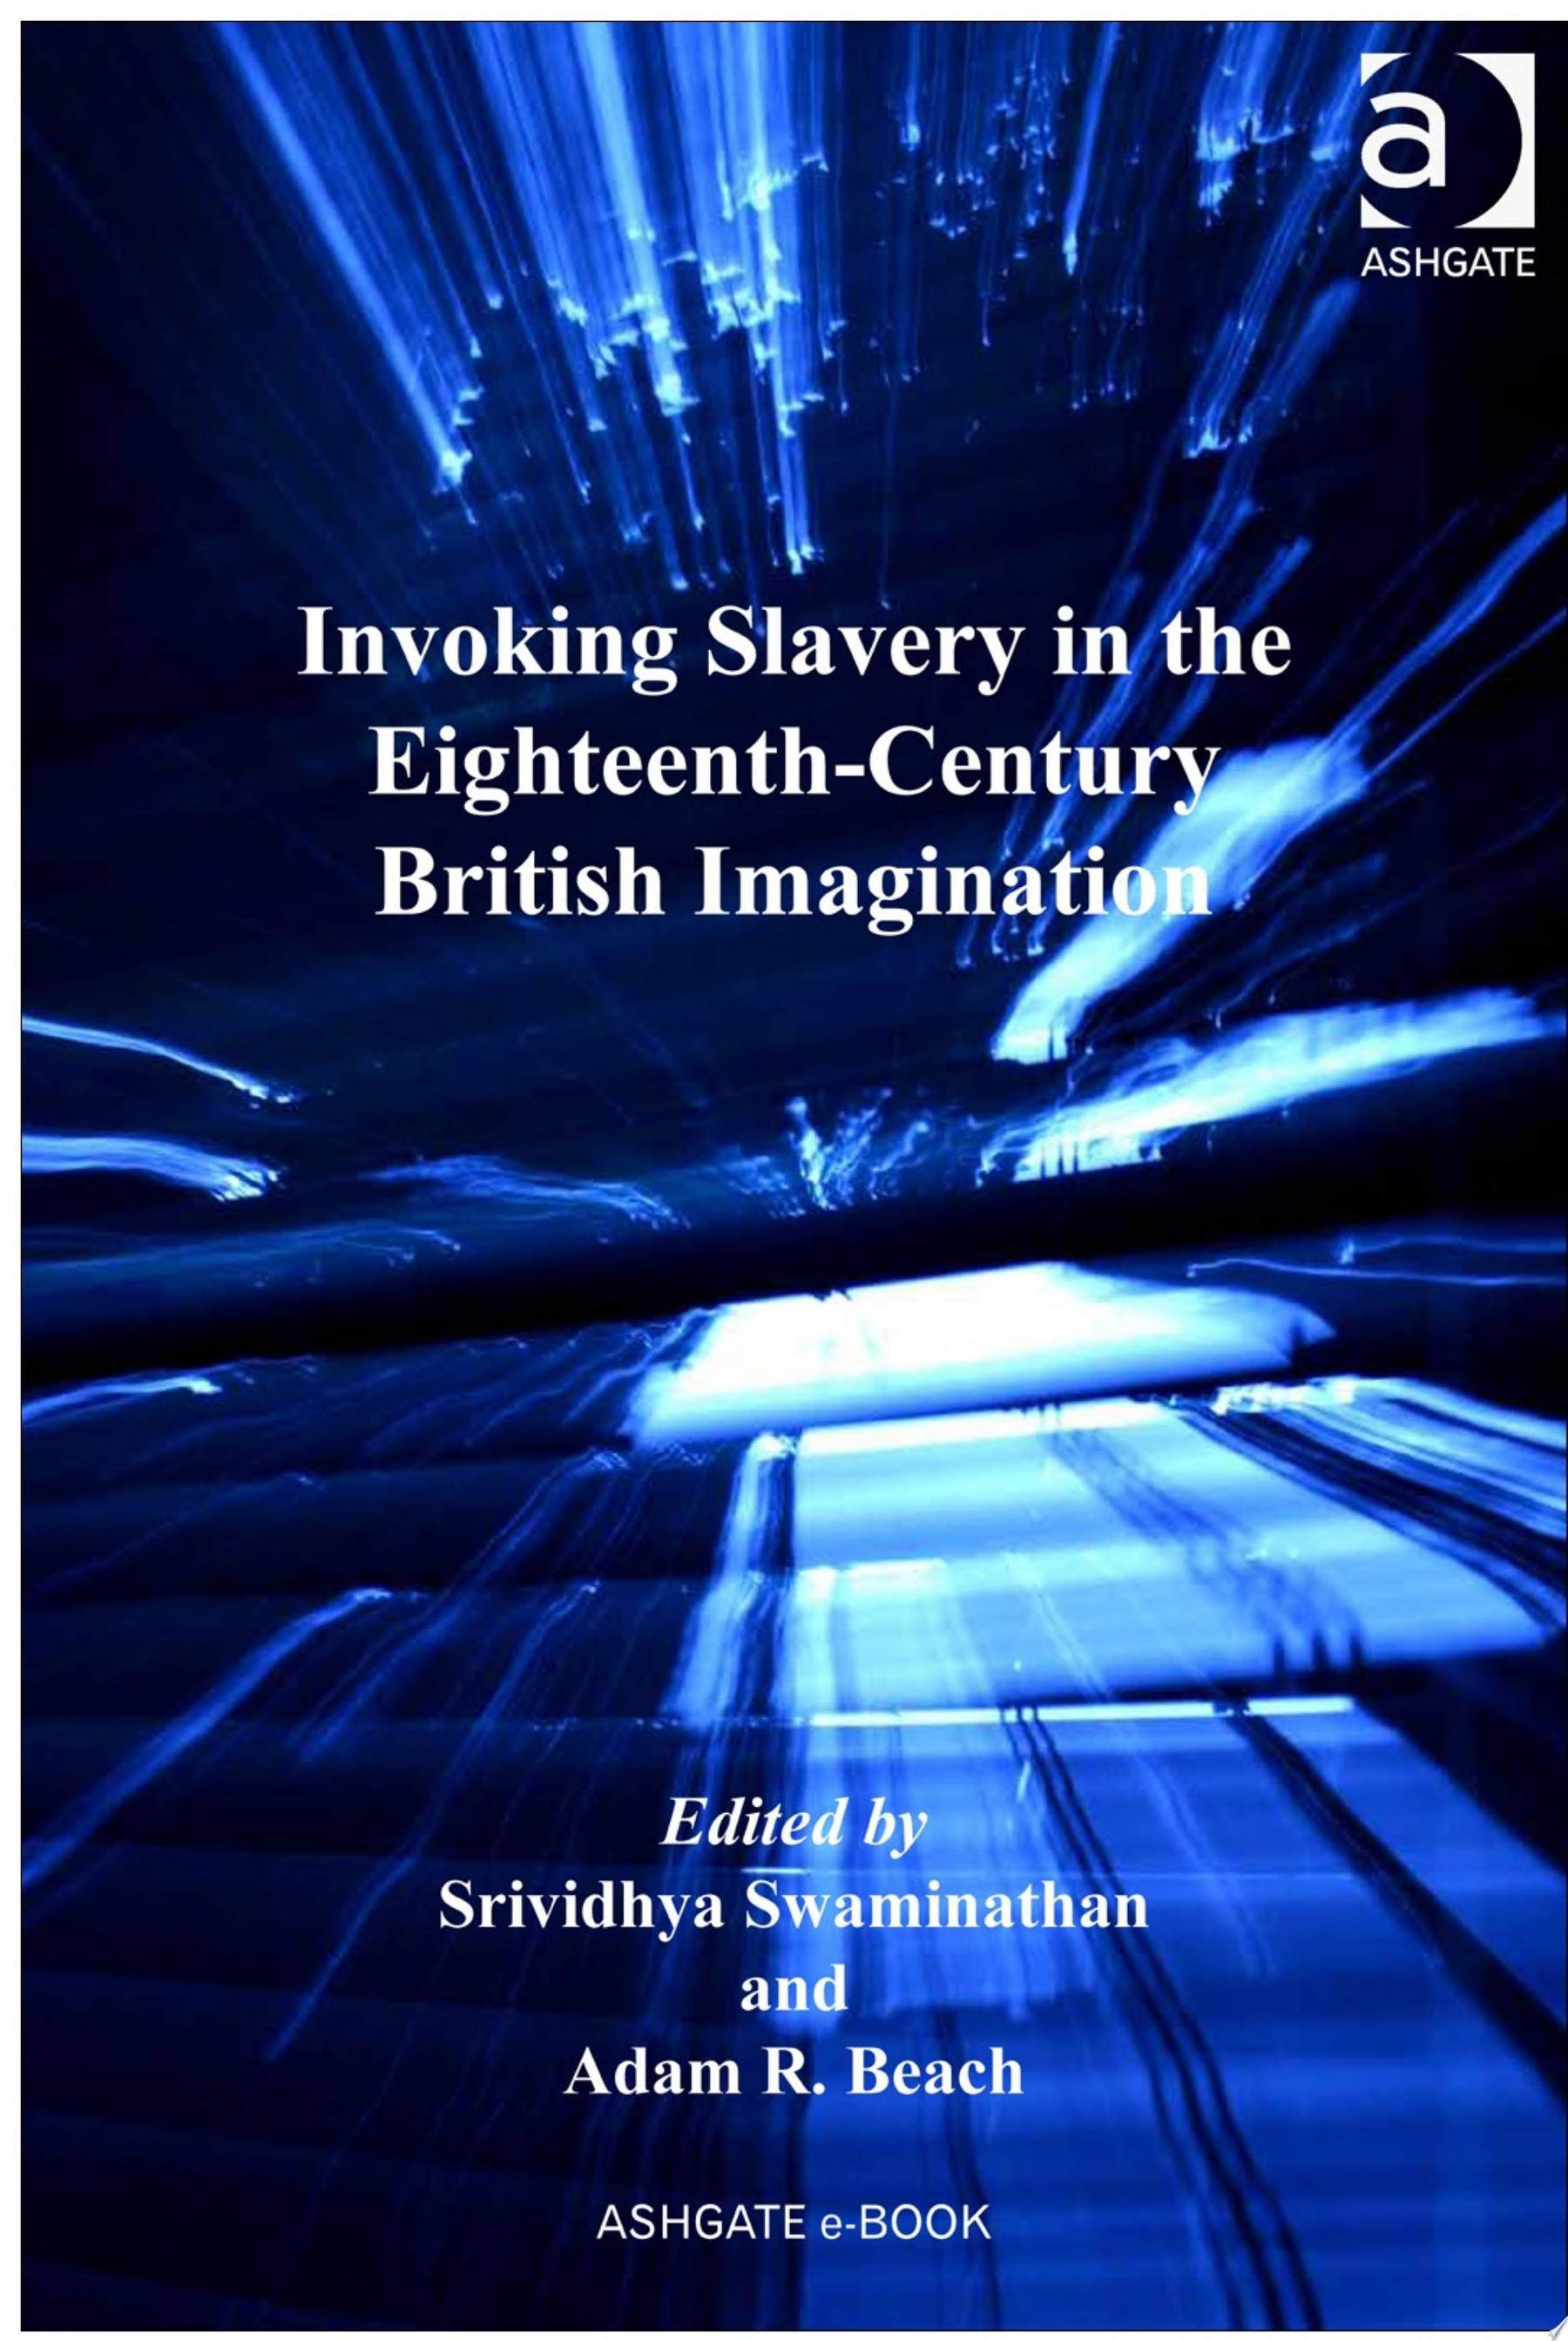 Invoking Slavery in the Eighteenth Century British Imagination